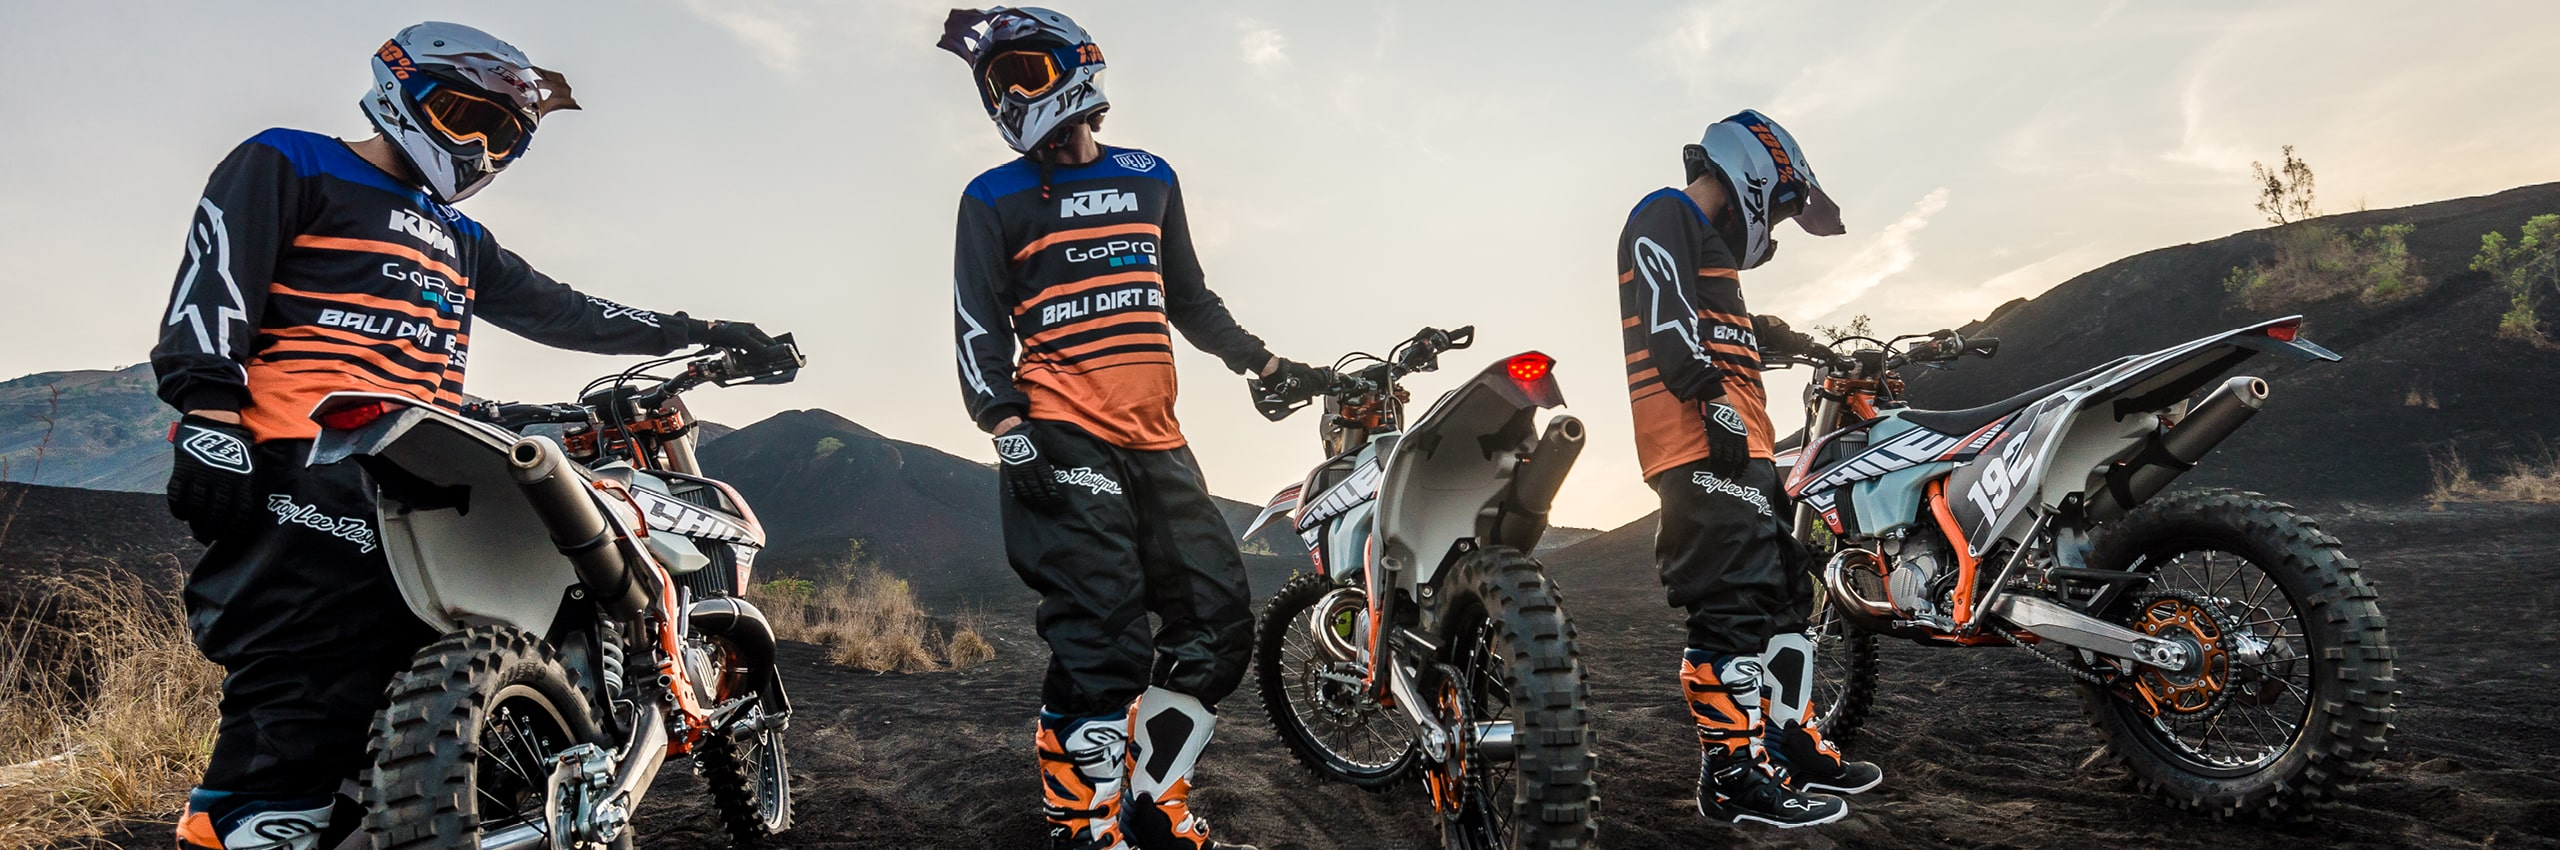 Bali_Dirt_Bikes_Kintamani_Black_Lava_Slider4